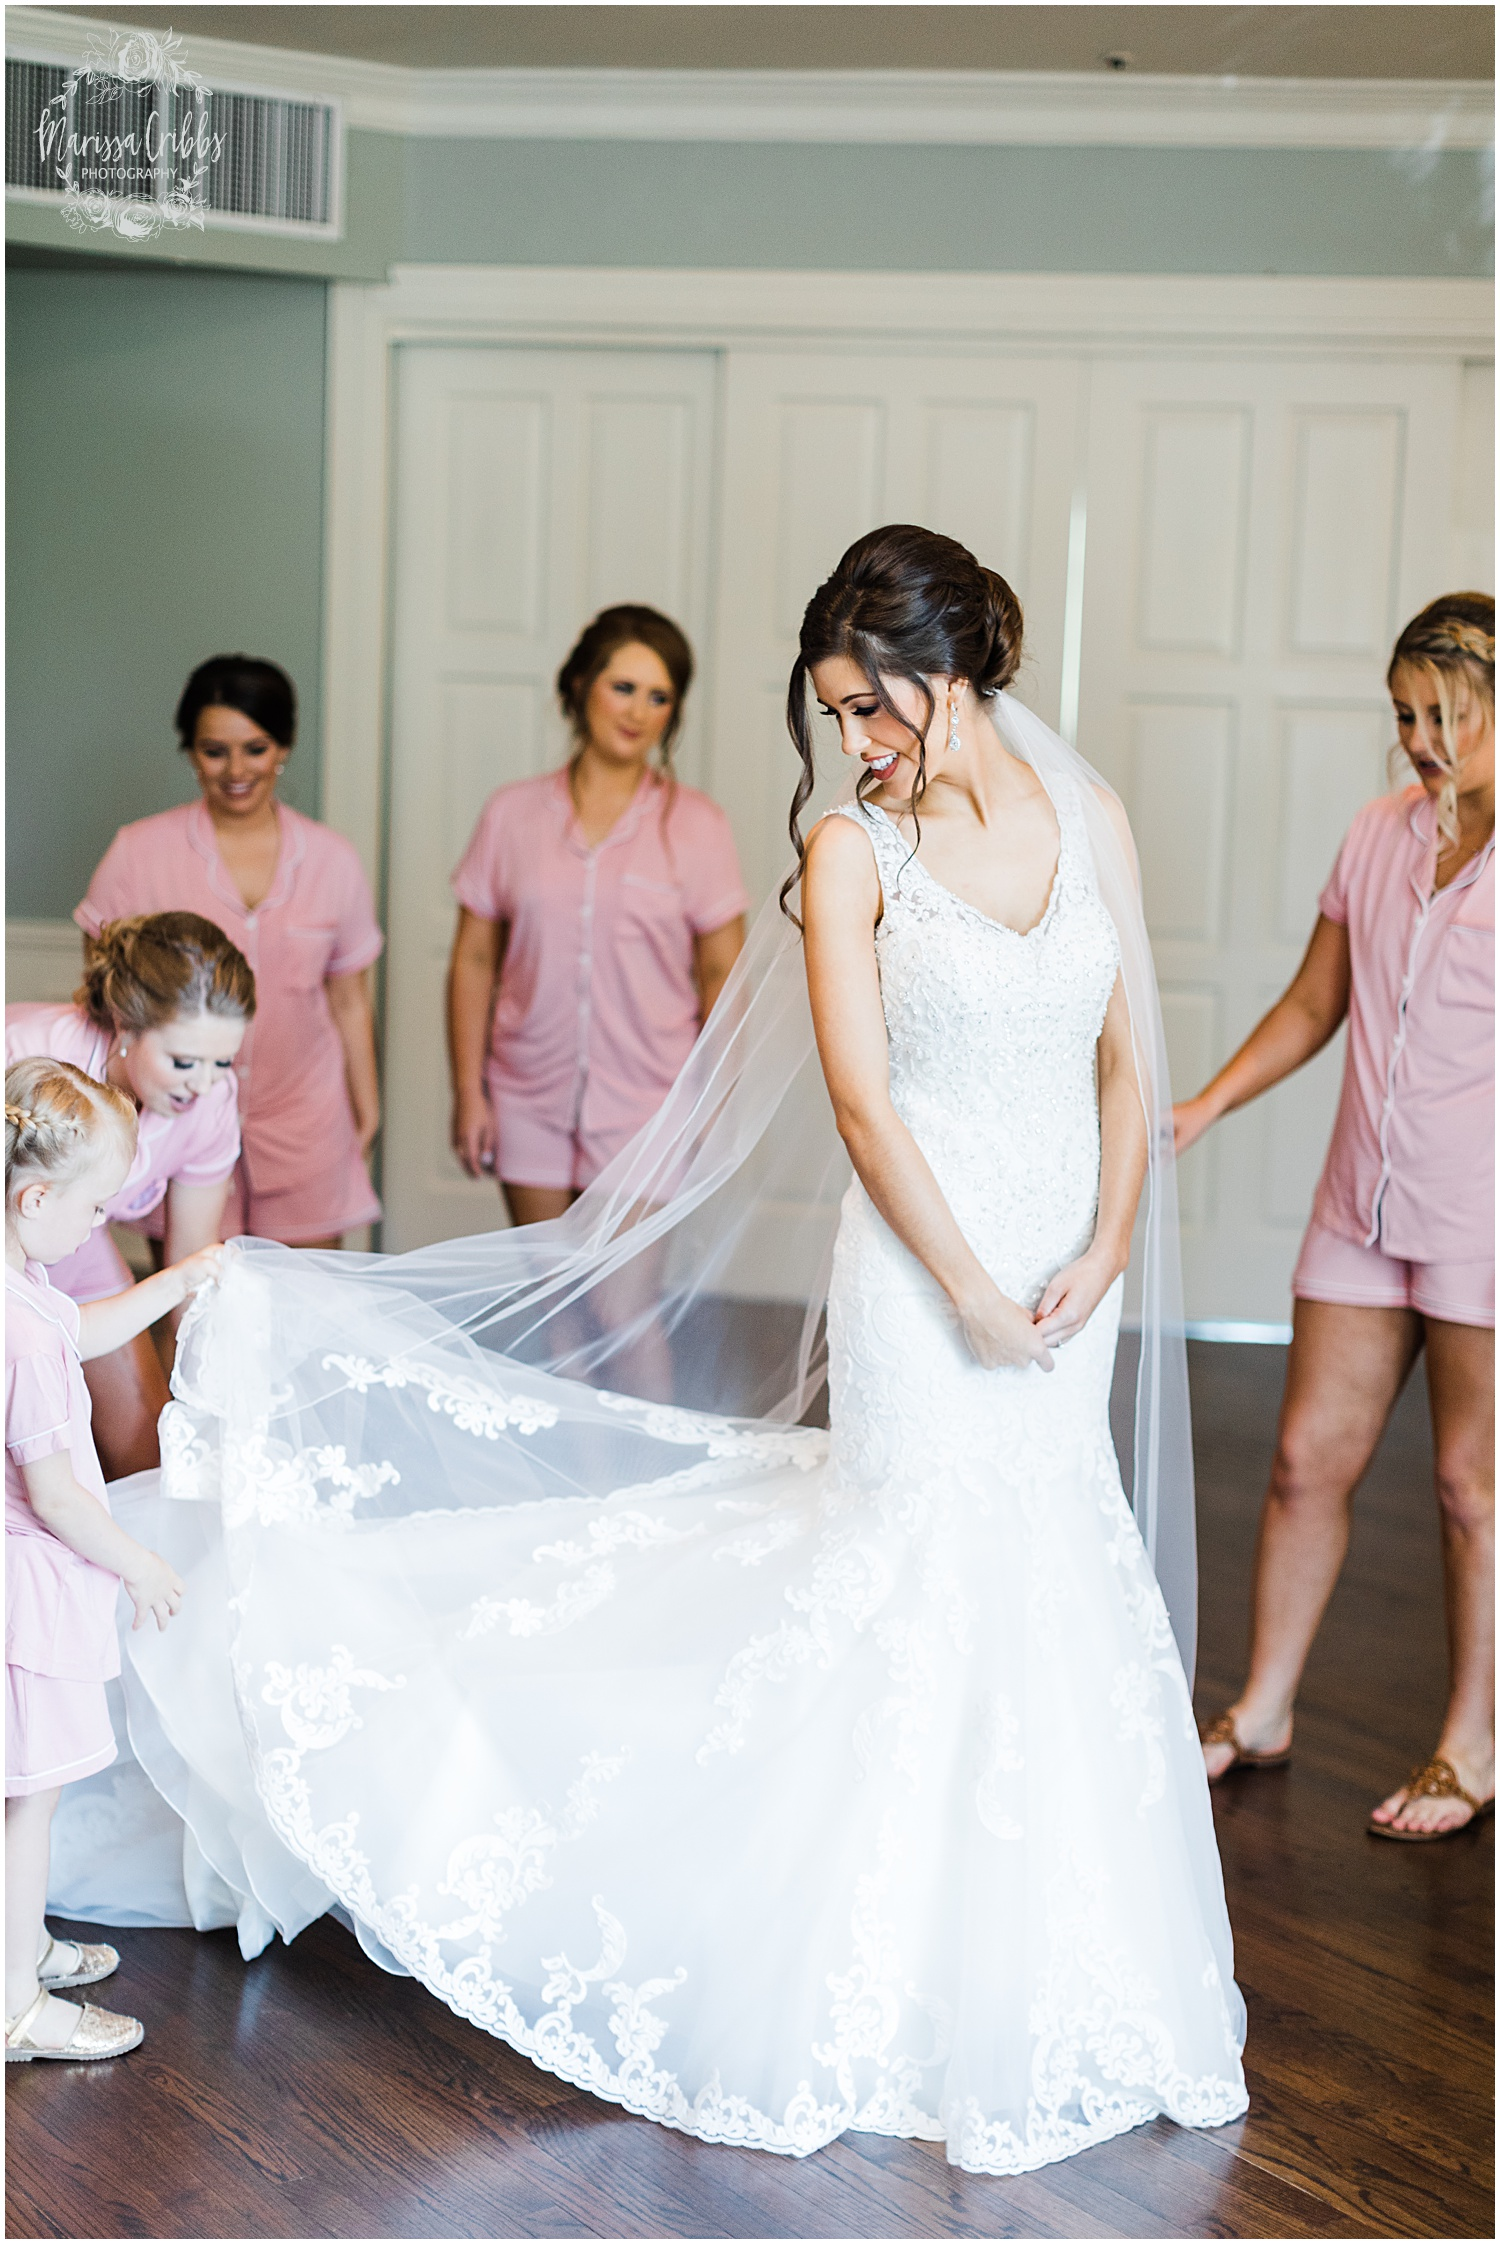 MEGAN & DEREK WEDDING BLOG | MARISSA CRIBBS PHOTOGRAPHY_8124.jpg